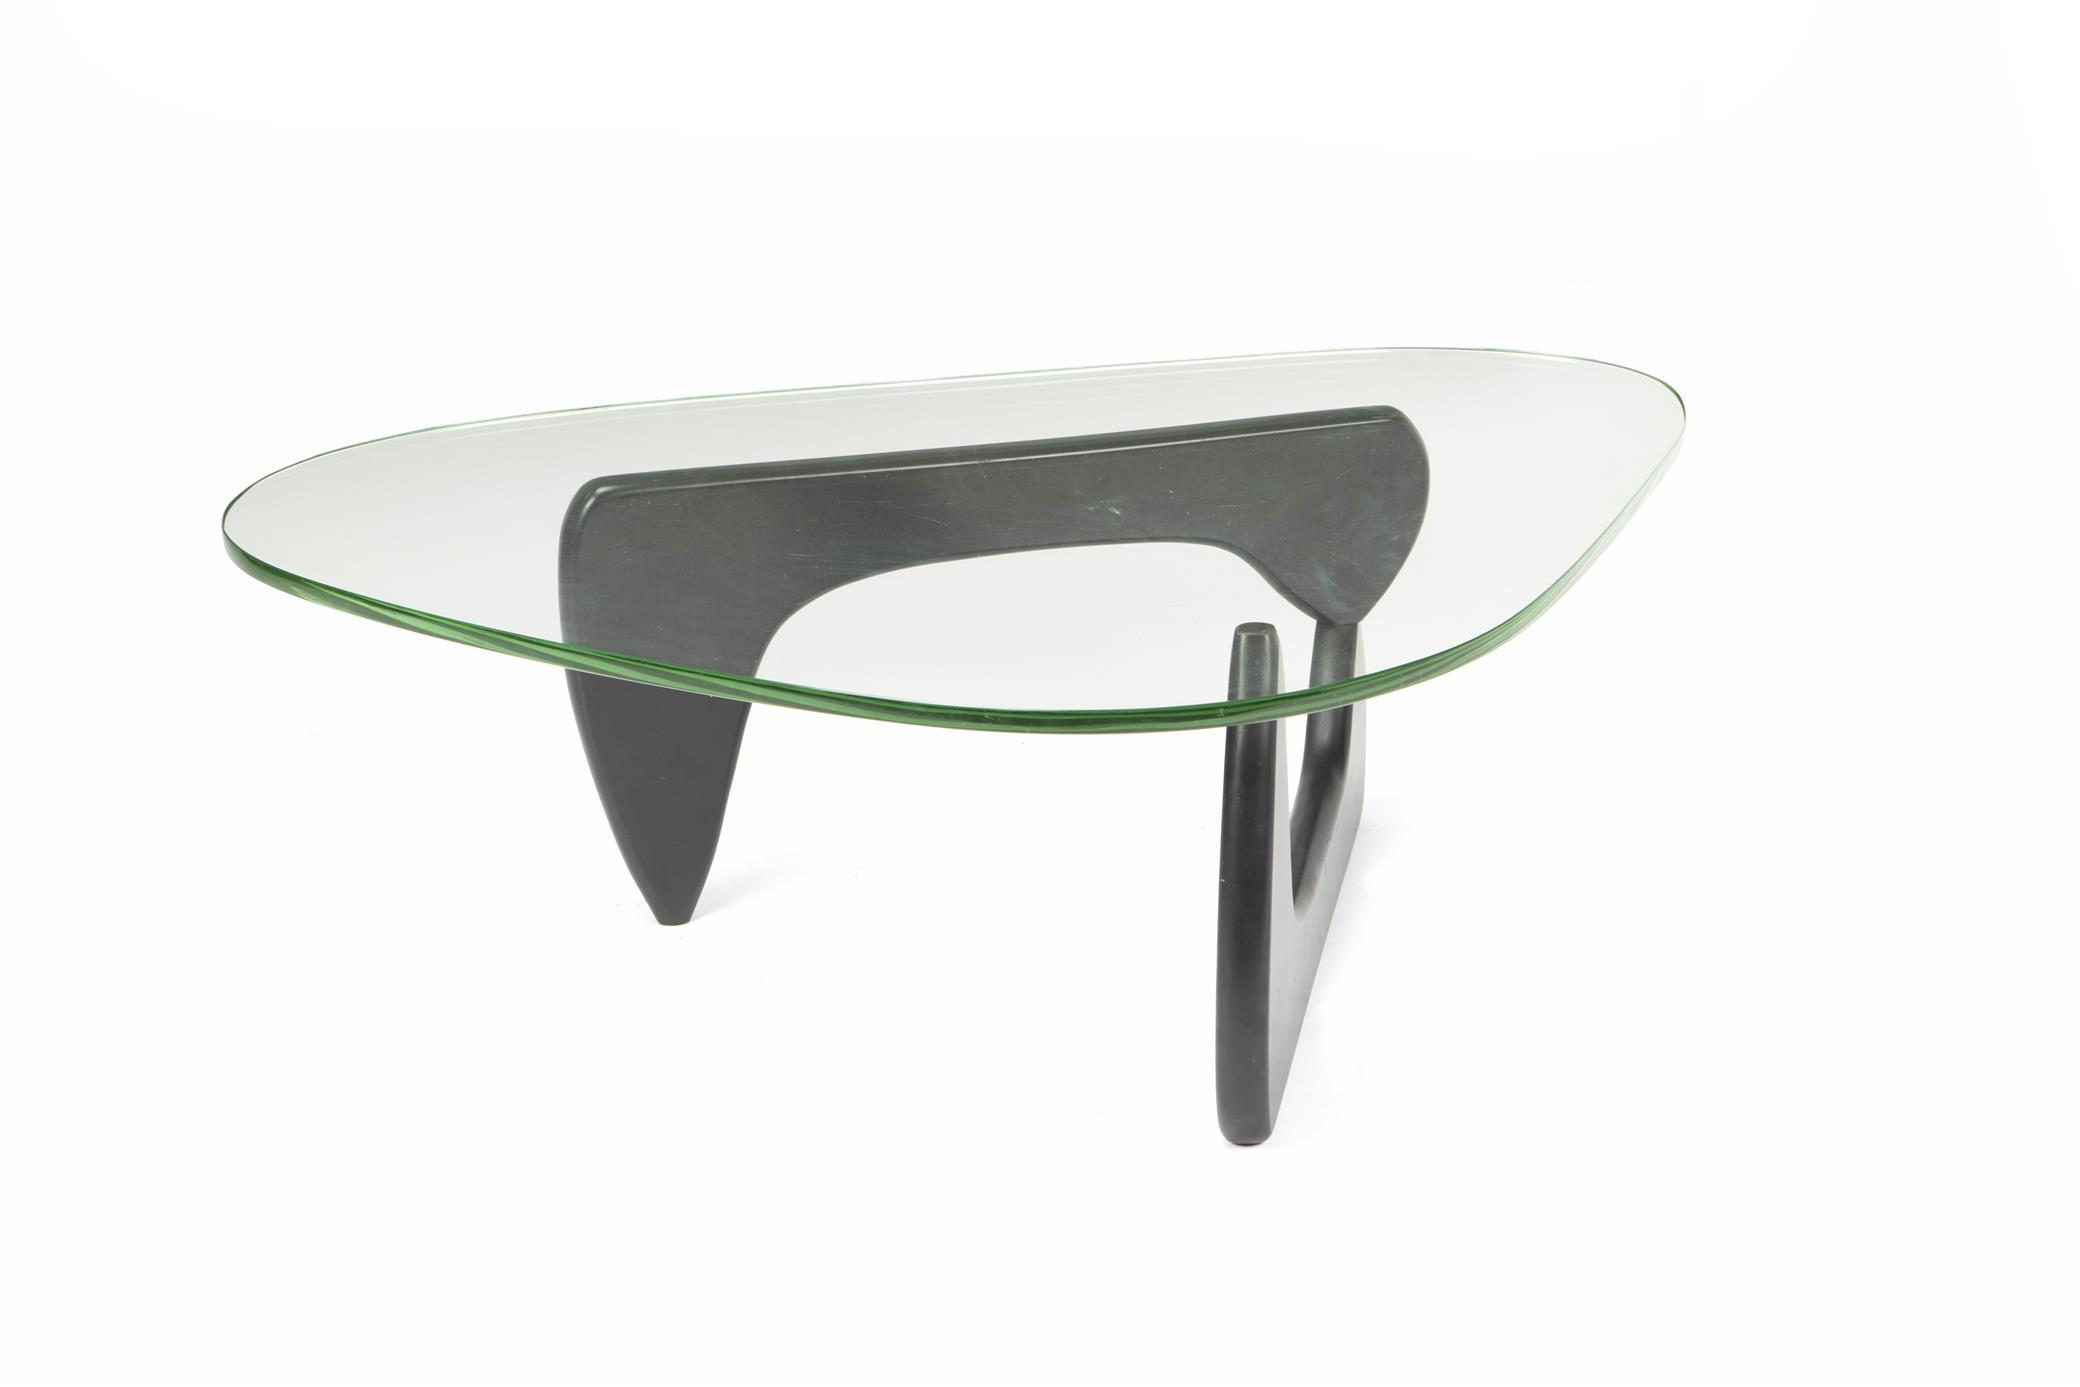 """Isamu Noguchi, (1904-1988, American), Coffee table IN50, Ebonized wood and glass, Overall: 15.75"""" H x 50.5"""" W x 36"""" D"""